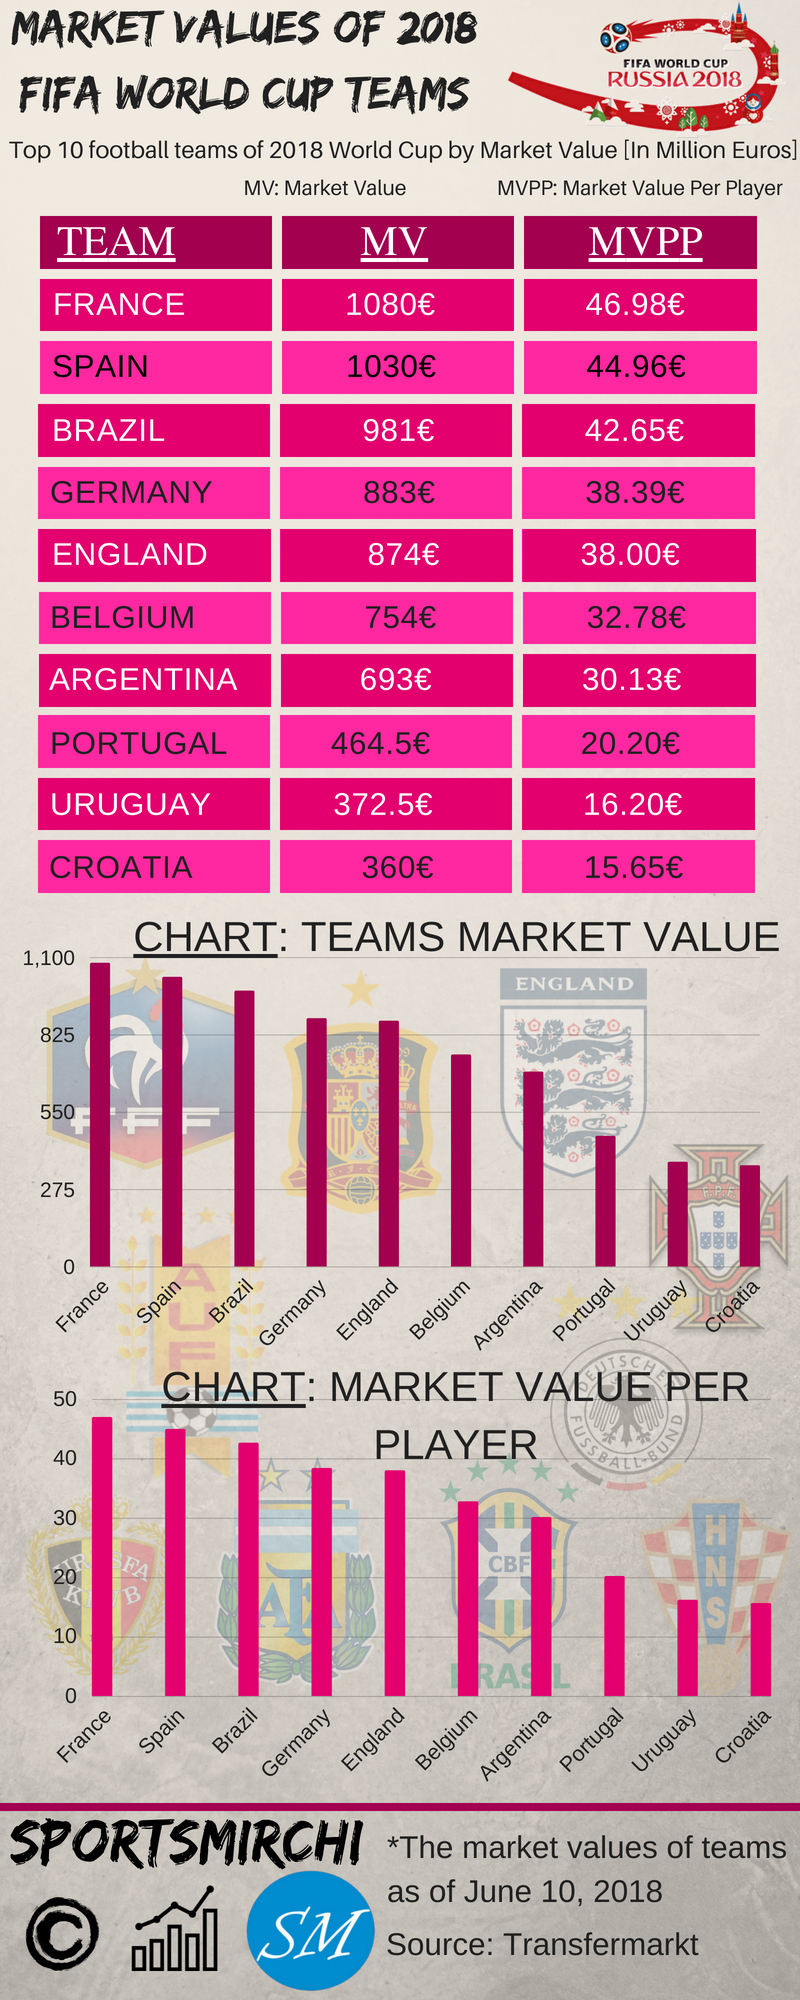 Market Values of FIFA World Cup 2018 Teams